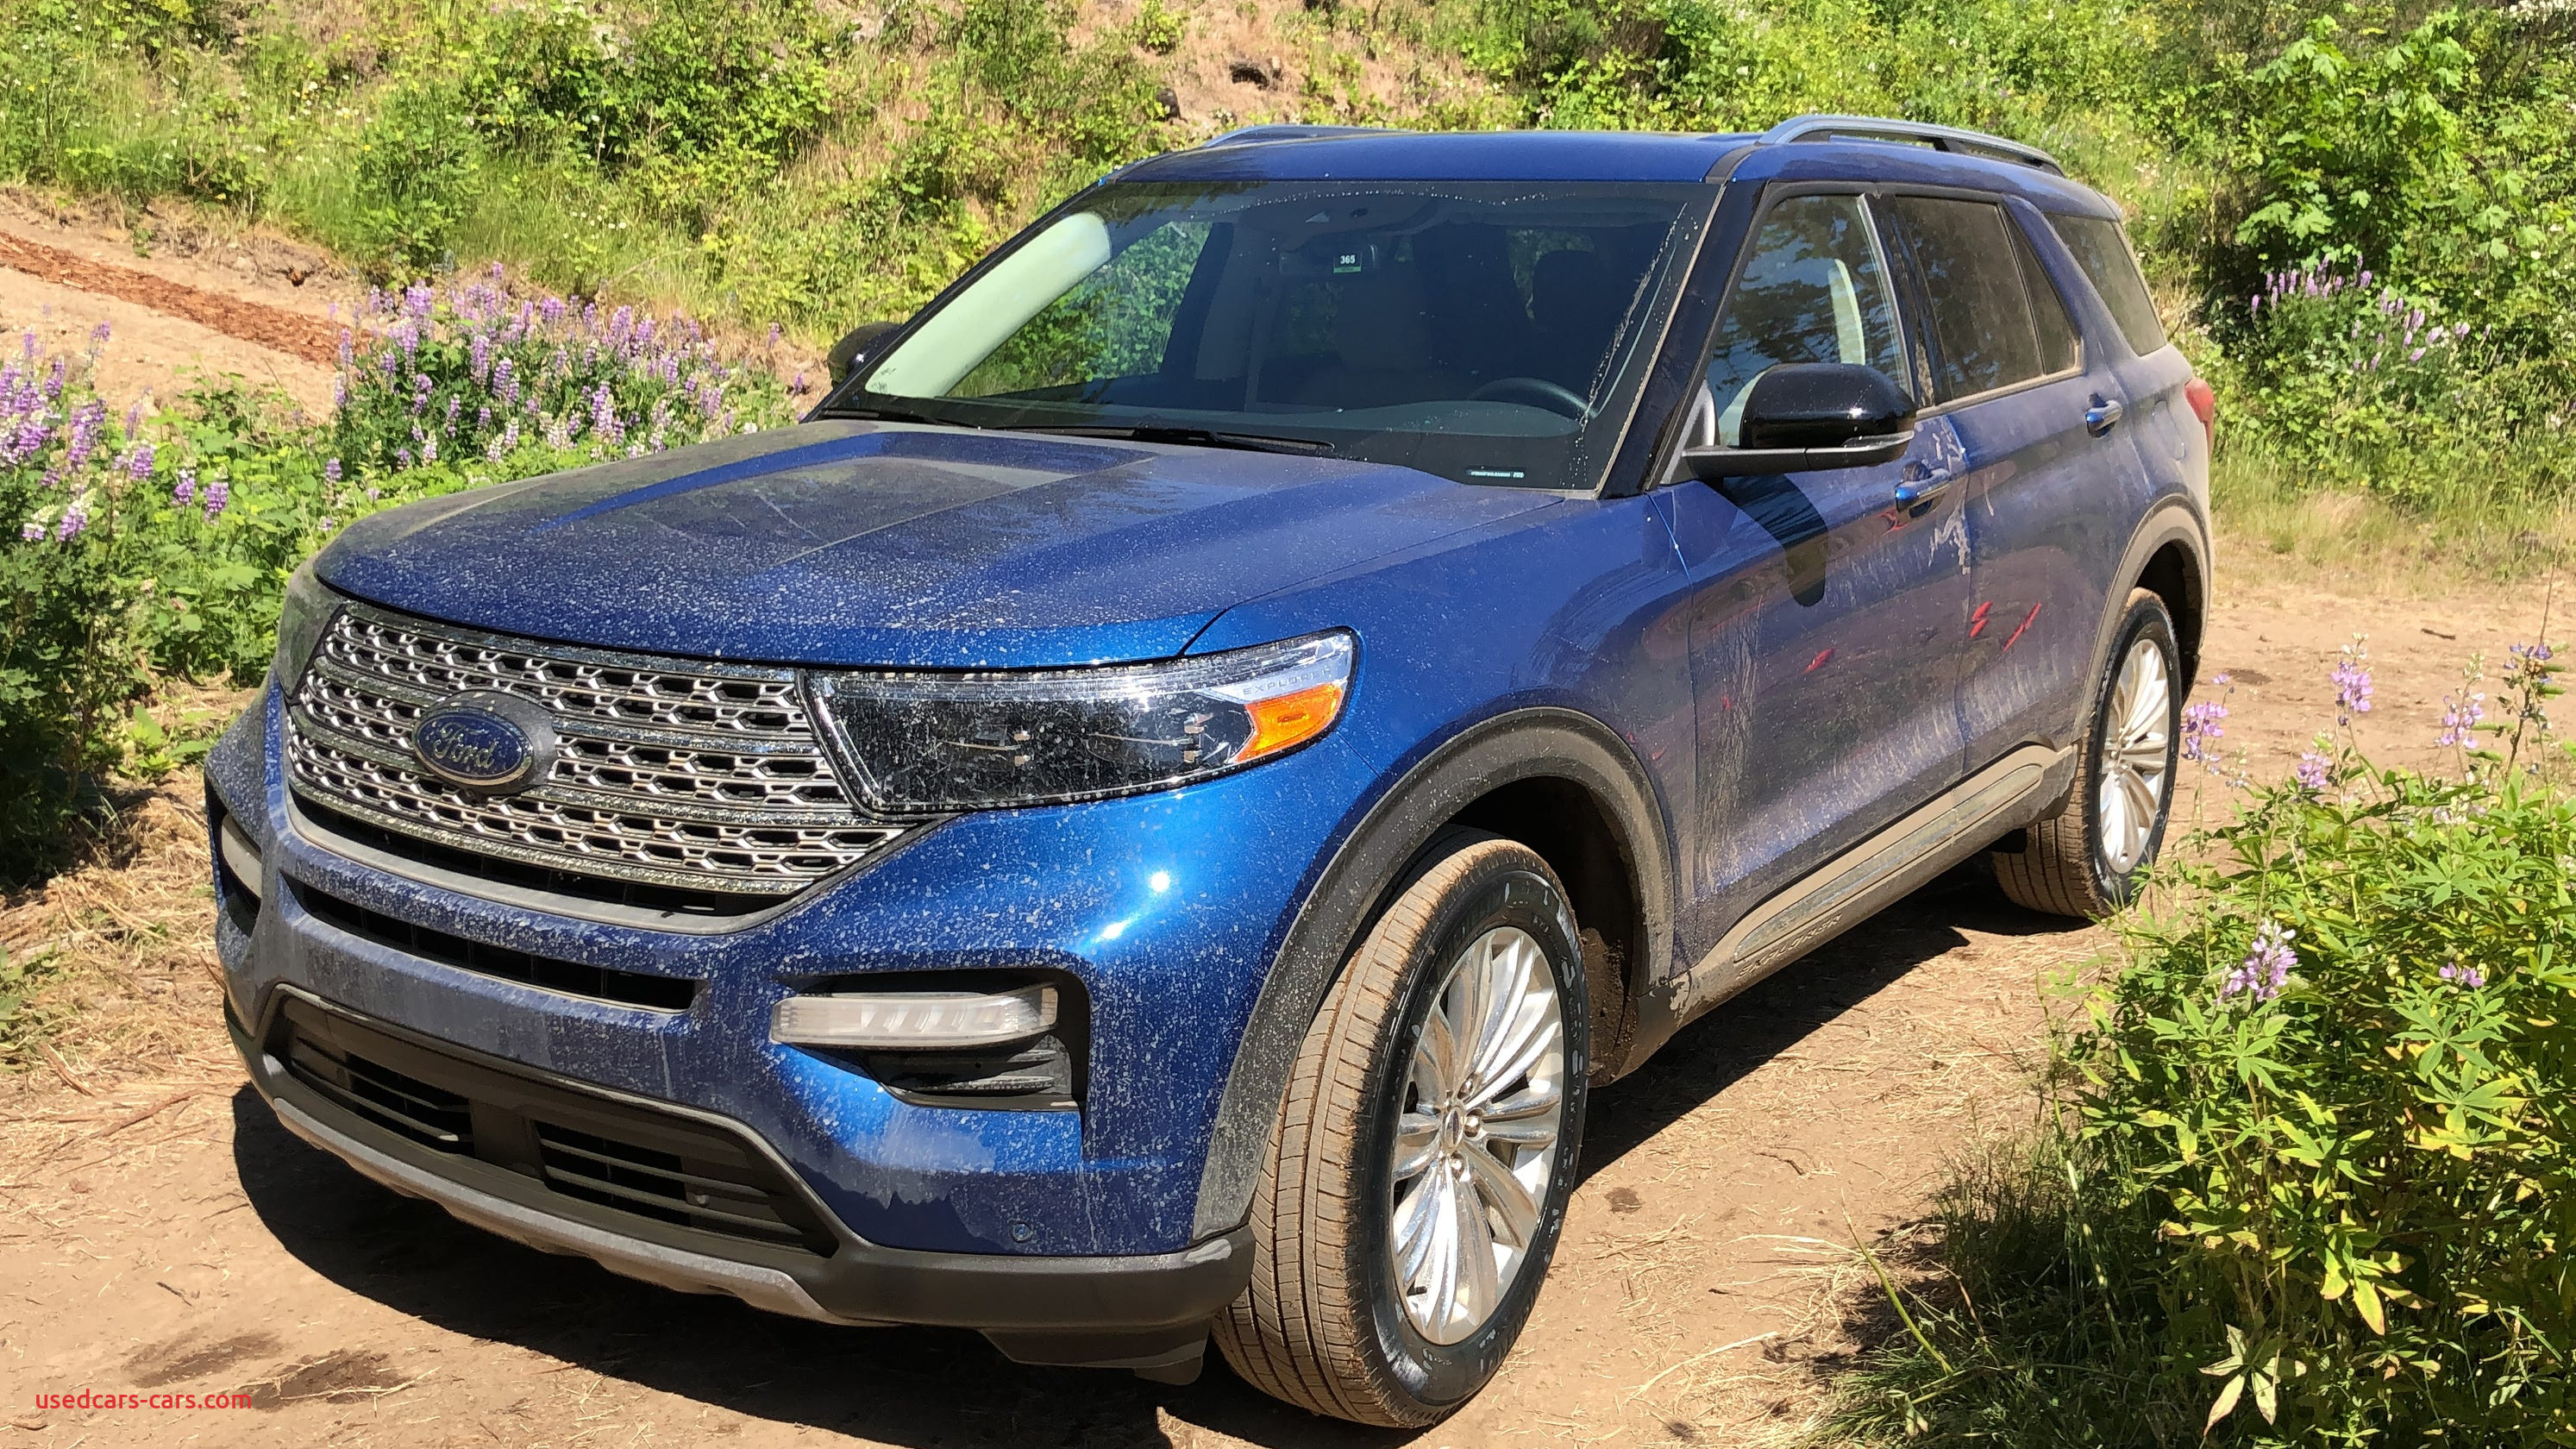 Ford Explorer 2020 0 Awesome 2020 ford Explorer Returns to Rwd Improving Safety Performance